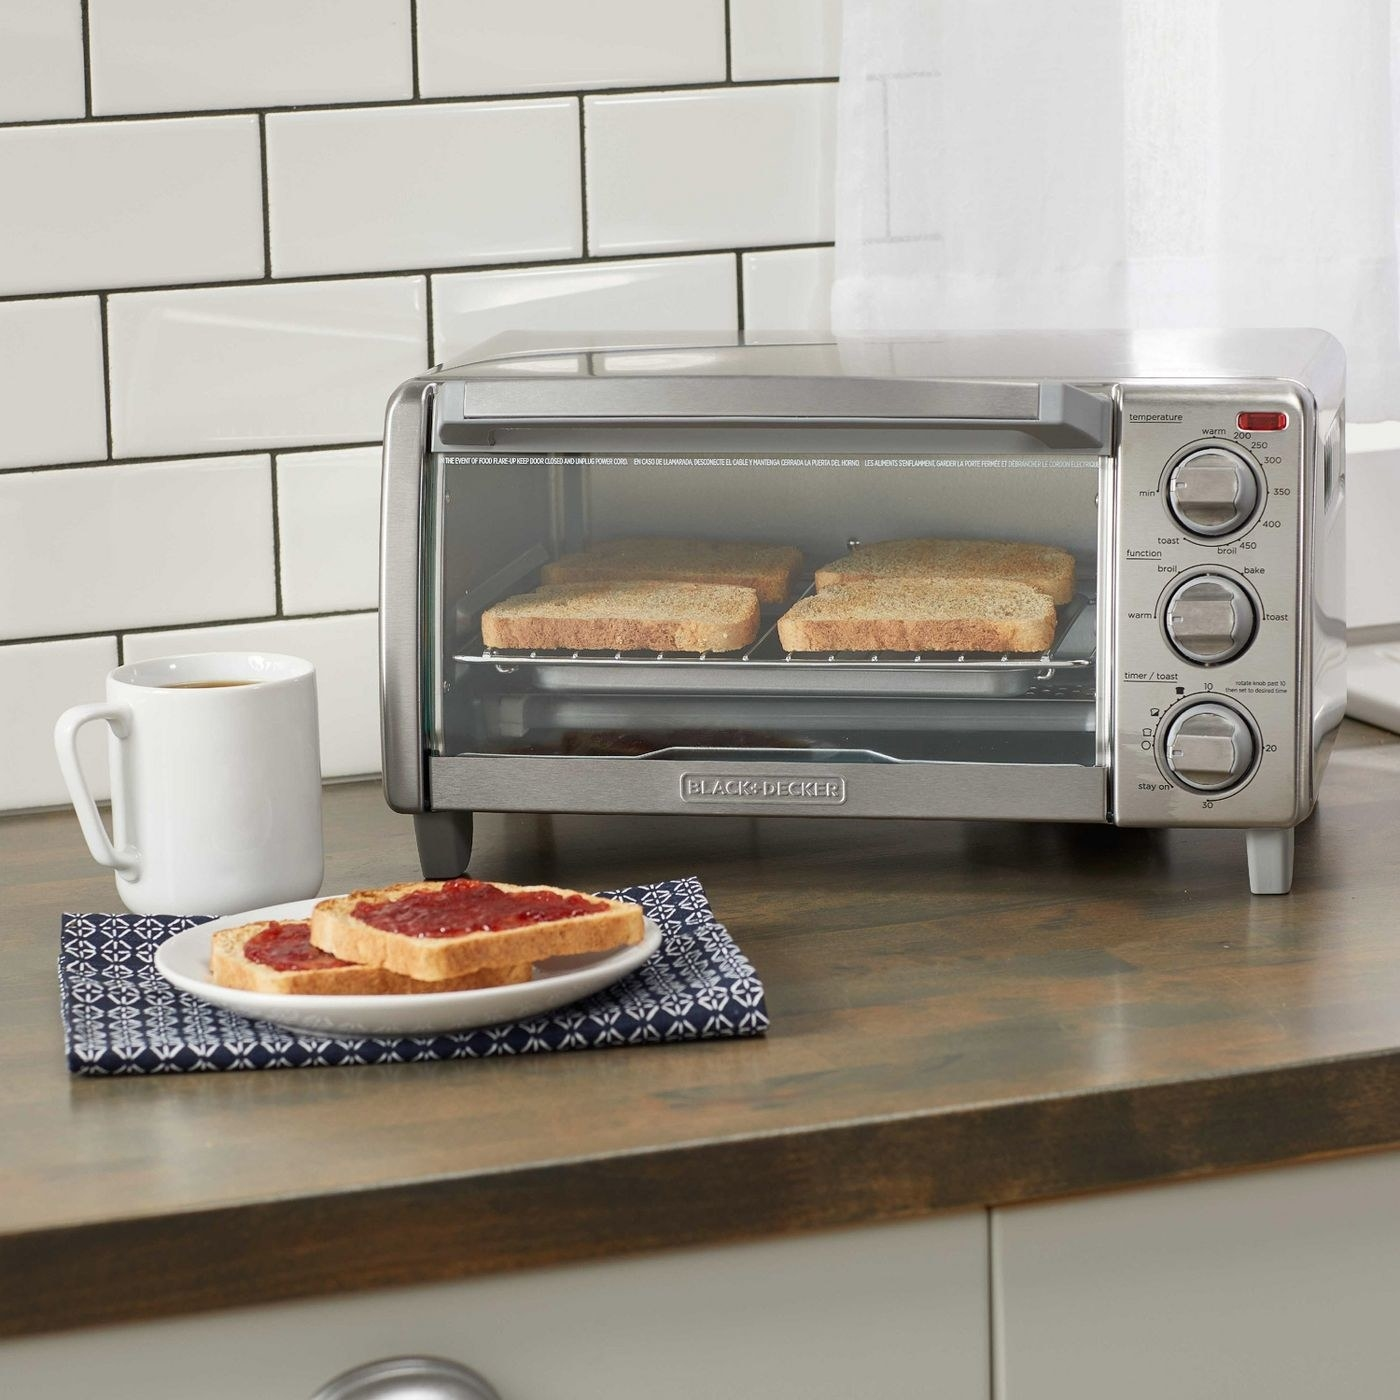 a stainless steel toaster with bread in it